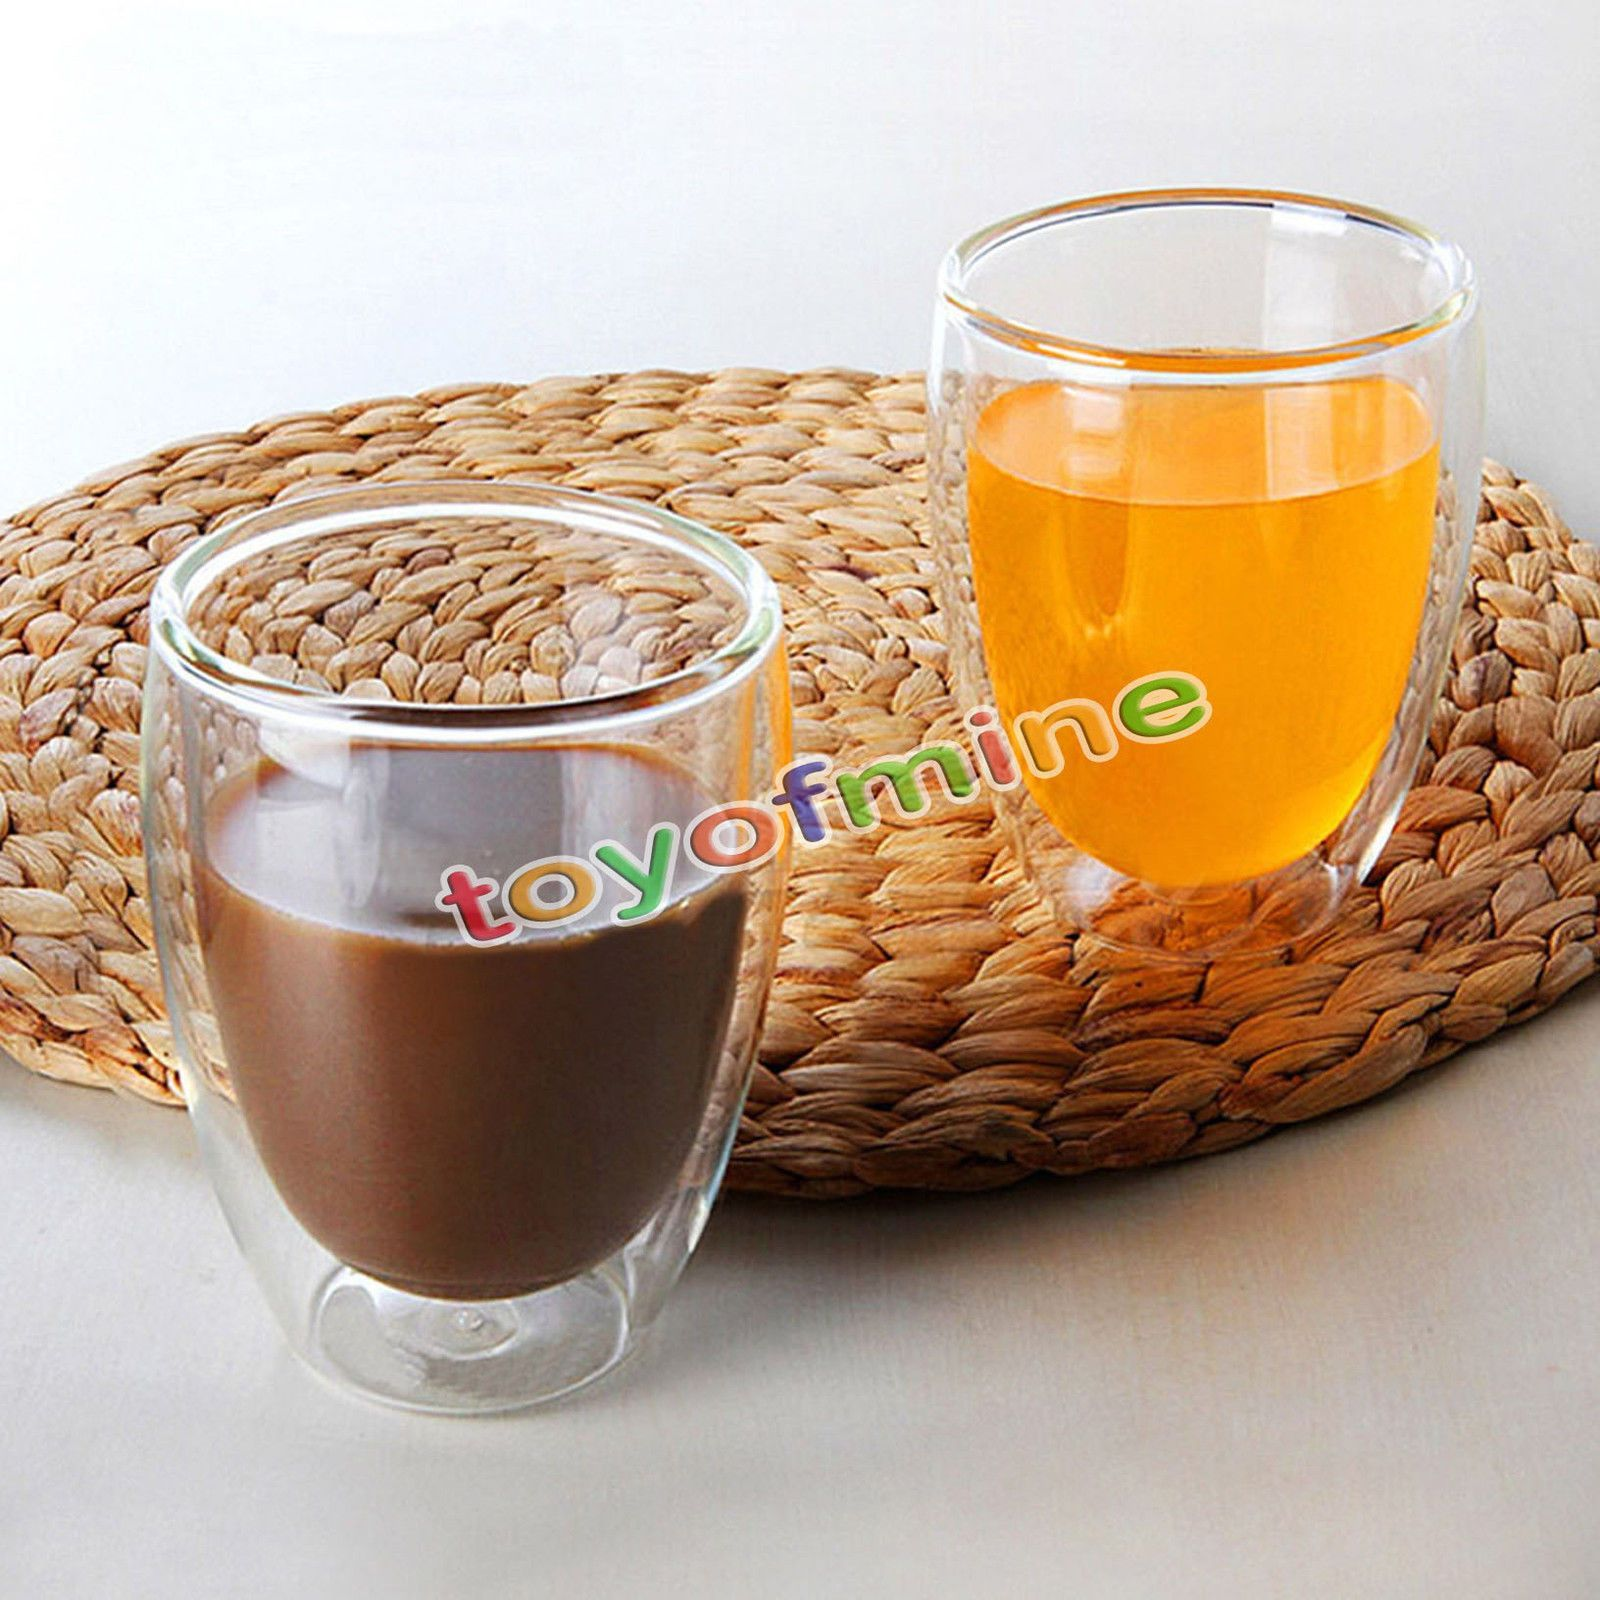 Cheap cup intel, Buy Quality coffee directly from China cup toy Suppliers:  Description: 100% brand new and high quality Material: Borosilicate Heat Resistant Glass Color: As t